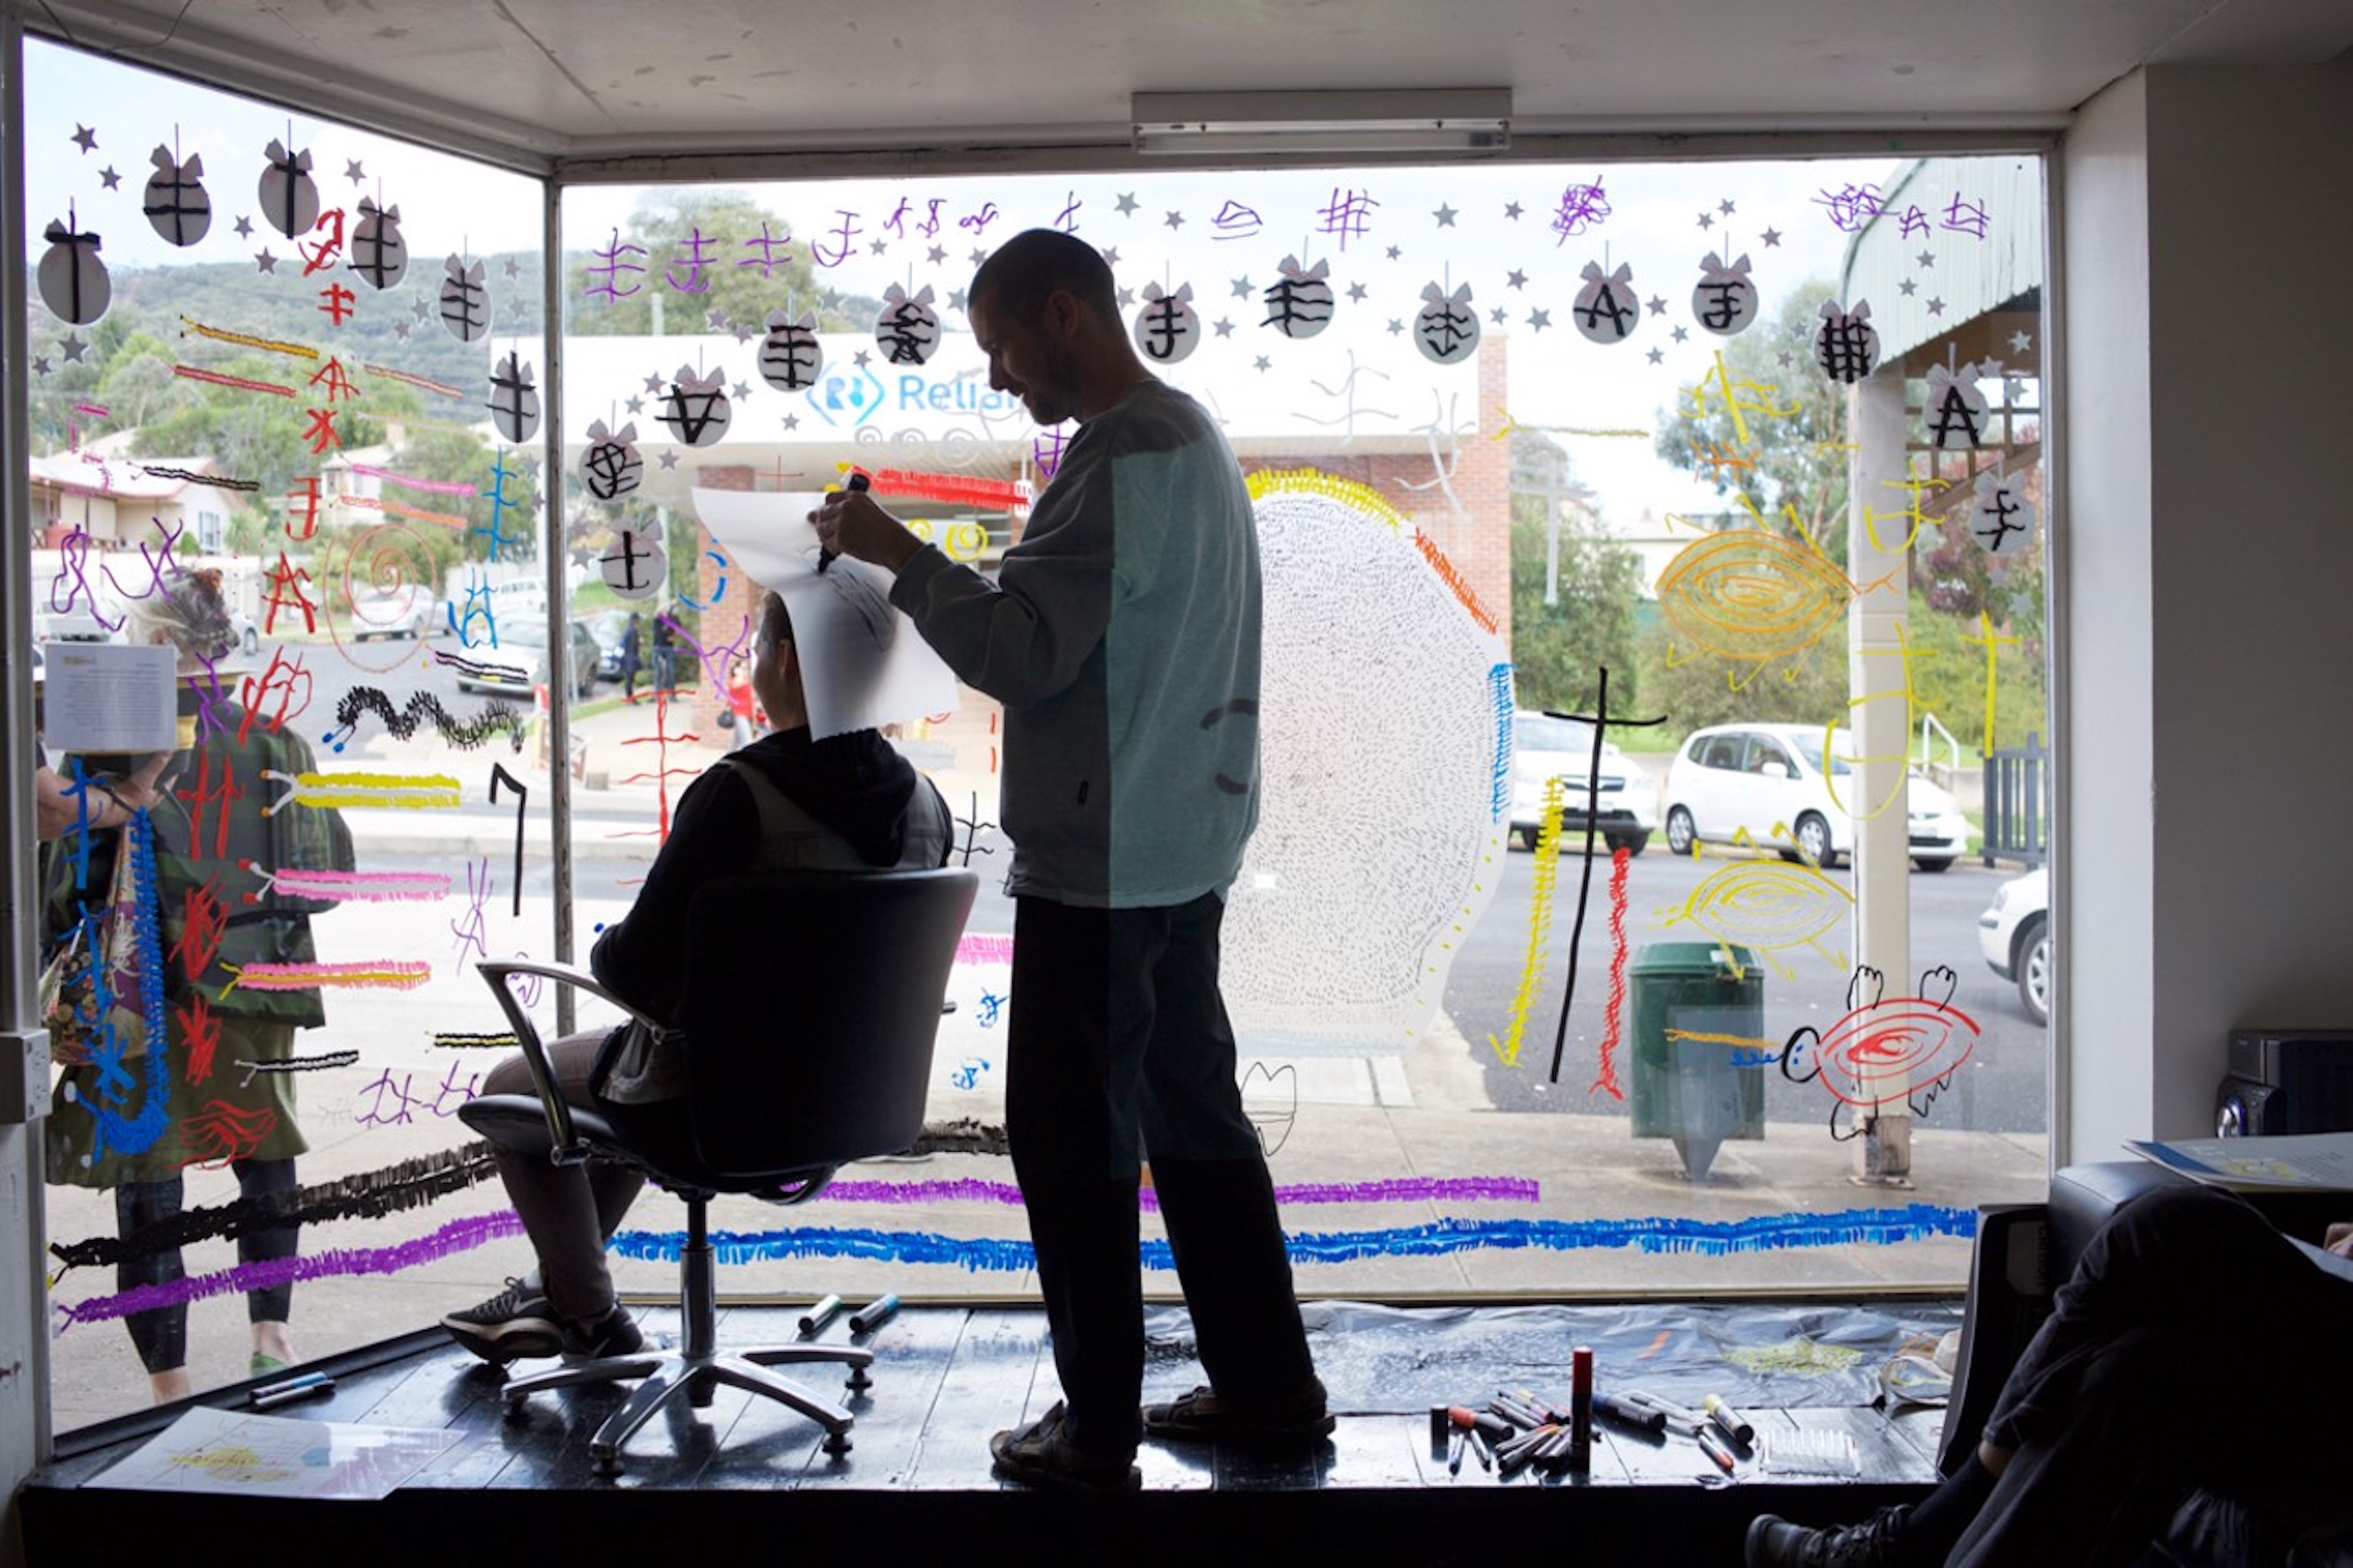 An artist stands in a display window reading/drawing the crown of a person's head.